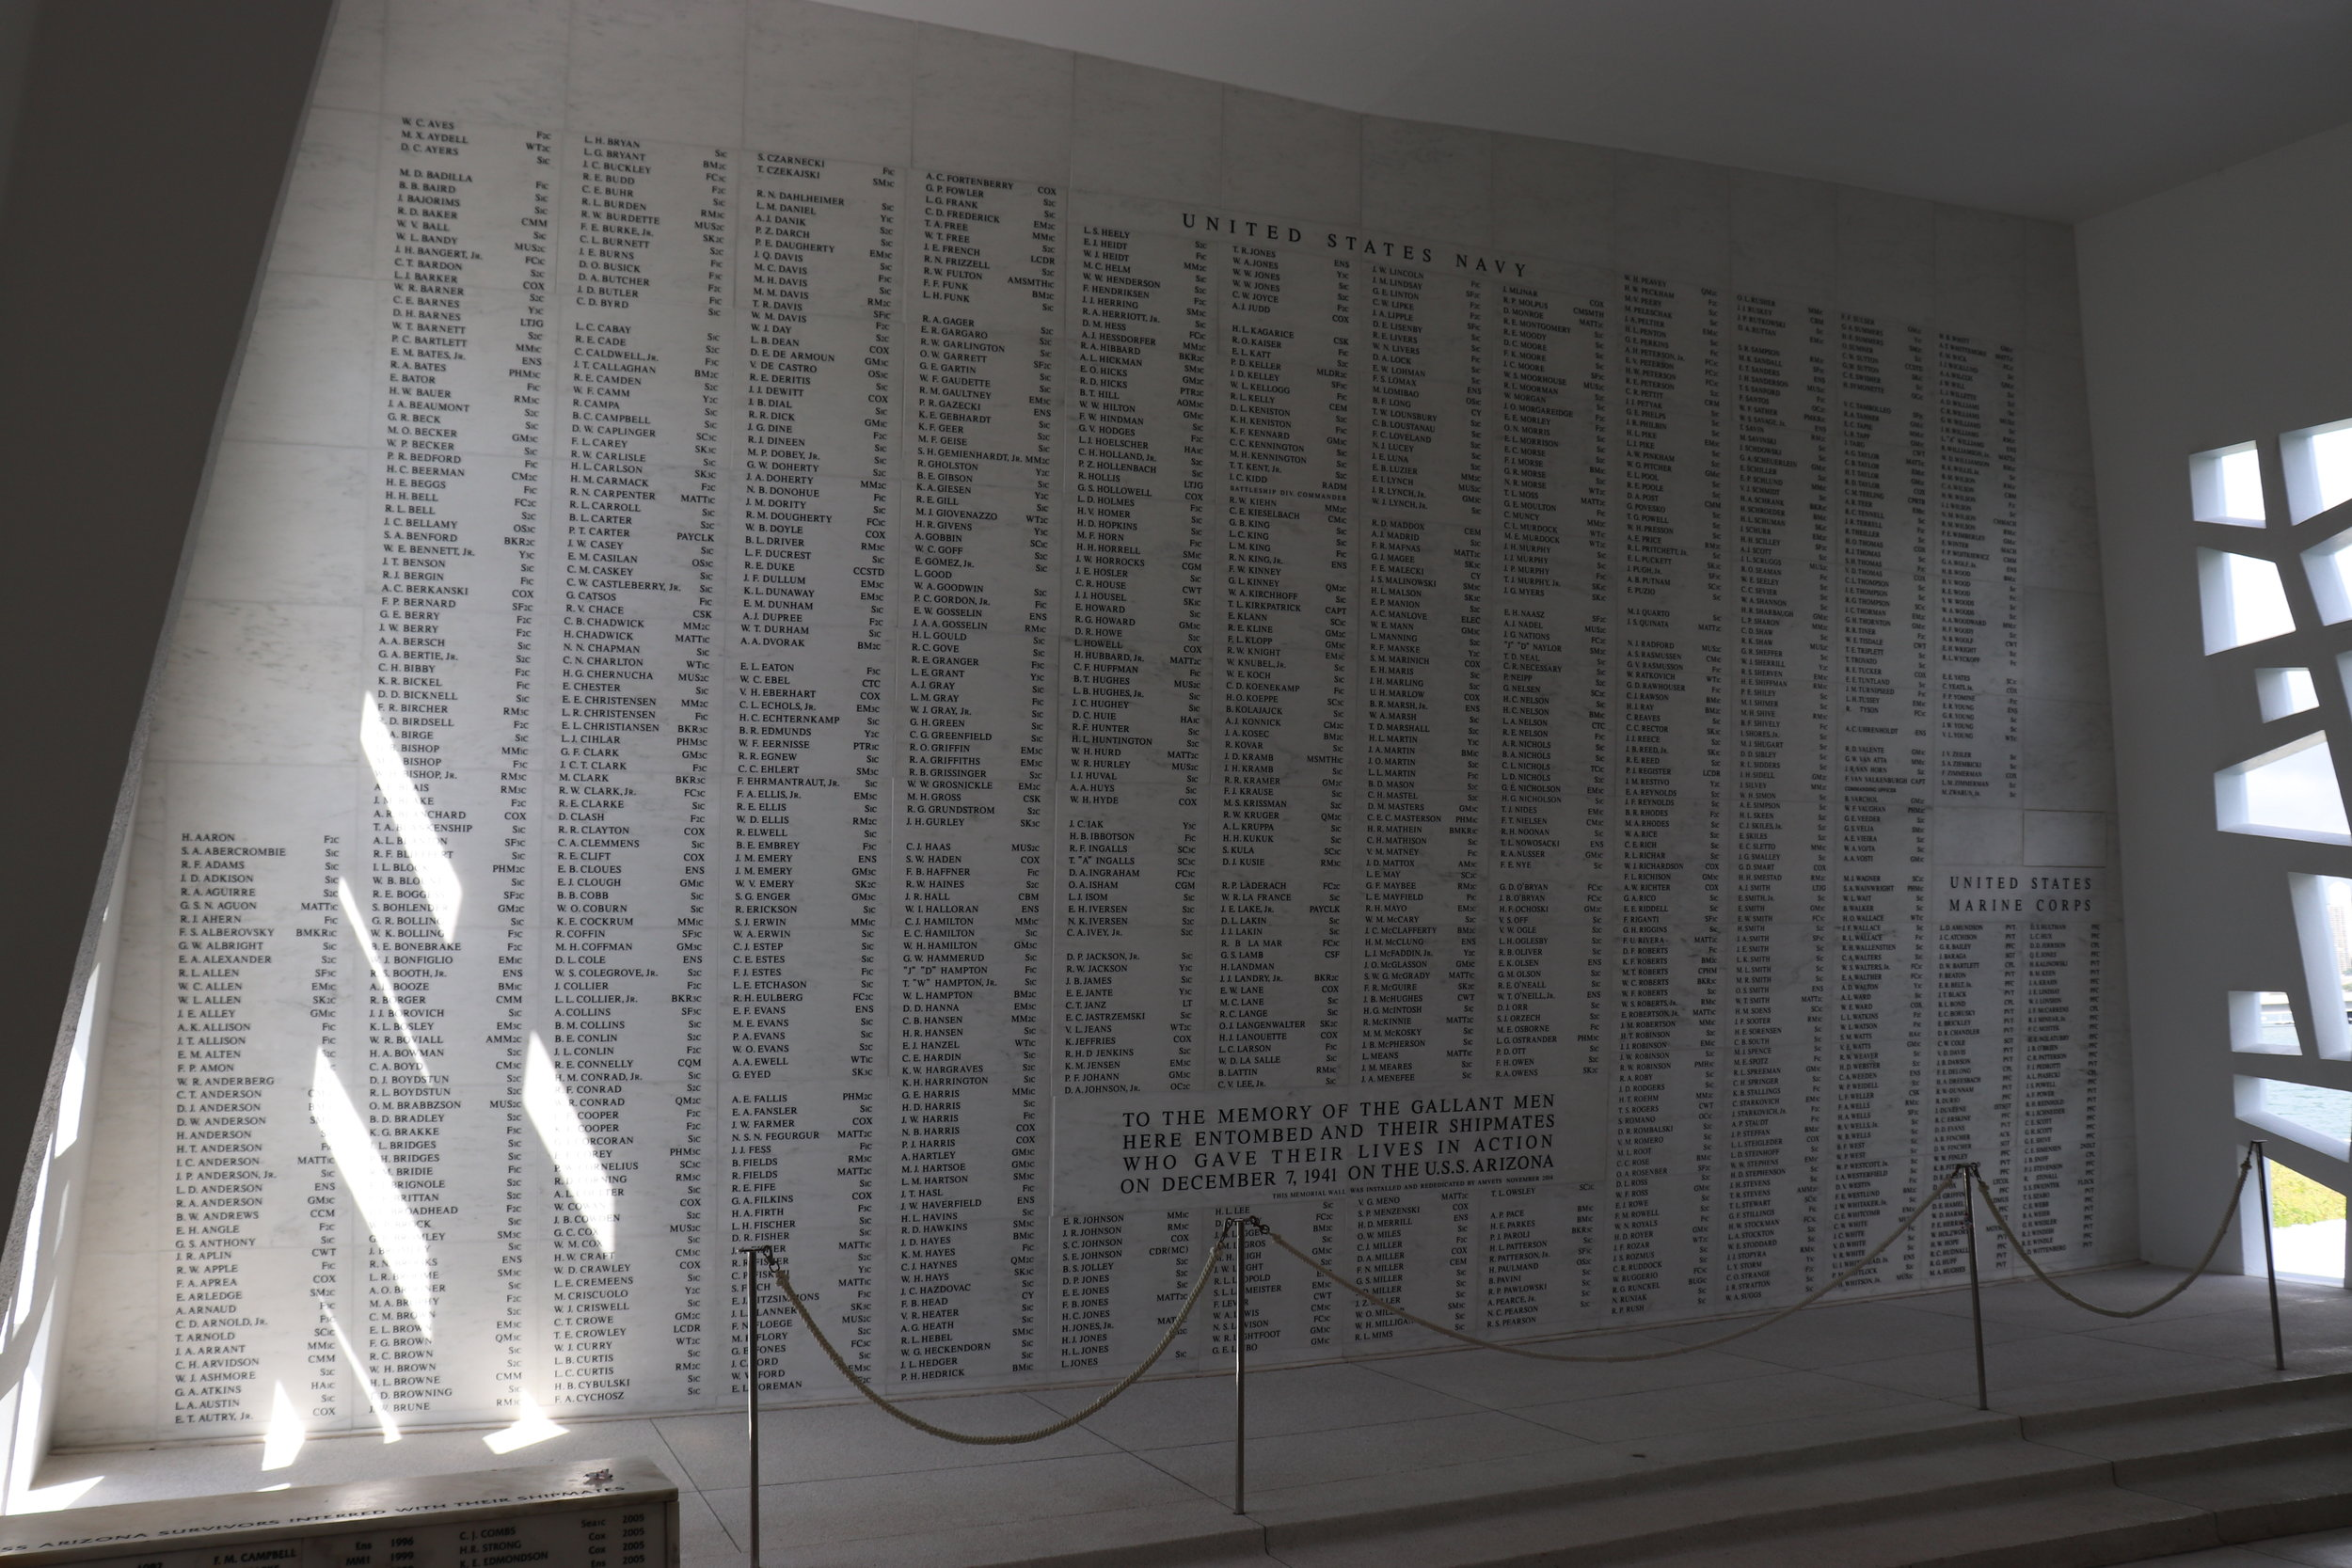 This wall has the names of everyone who died on the USS Arizona that day.